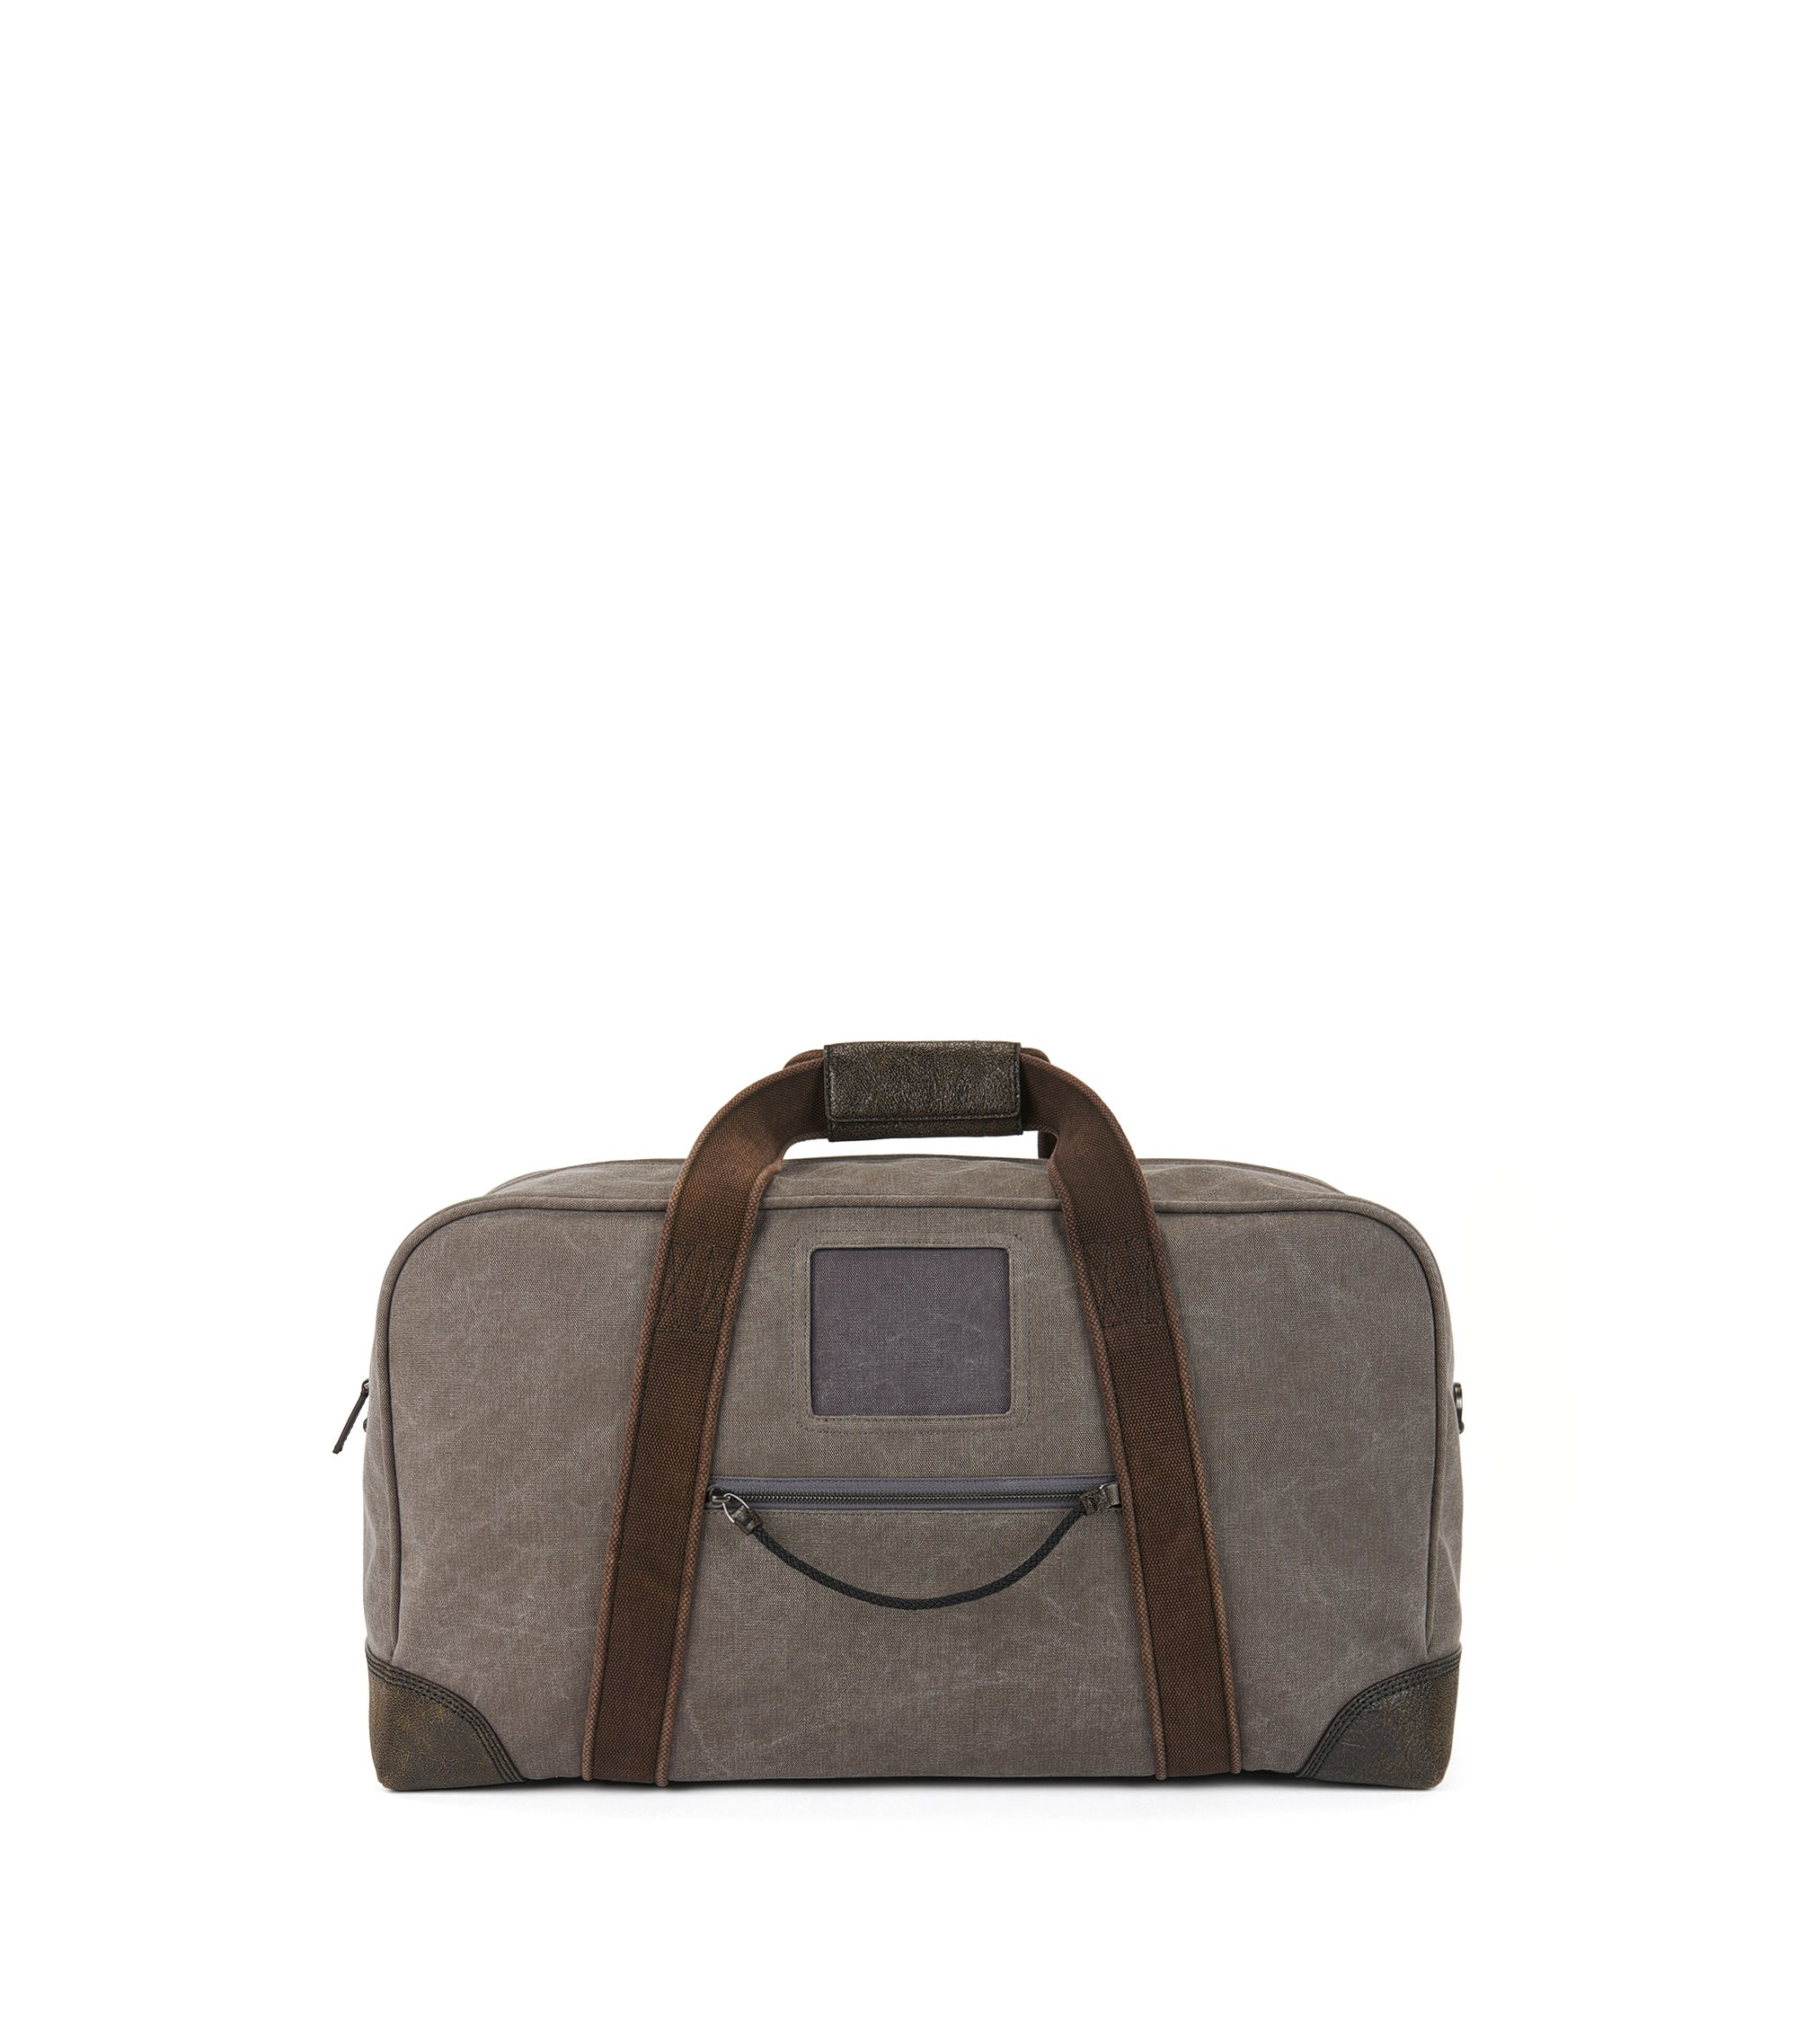 Cotton-canvas holdall with leather trims, Anthracite